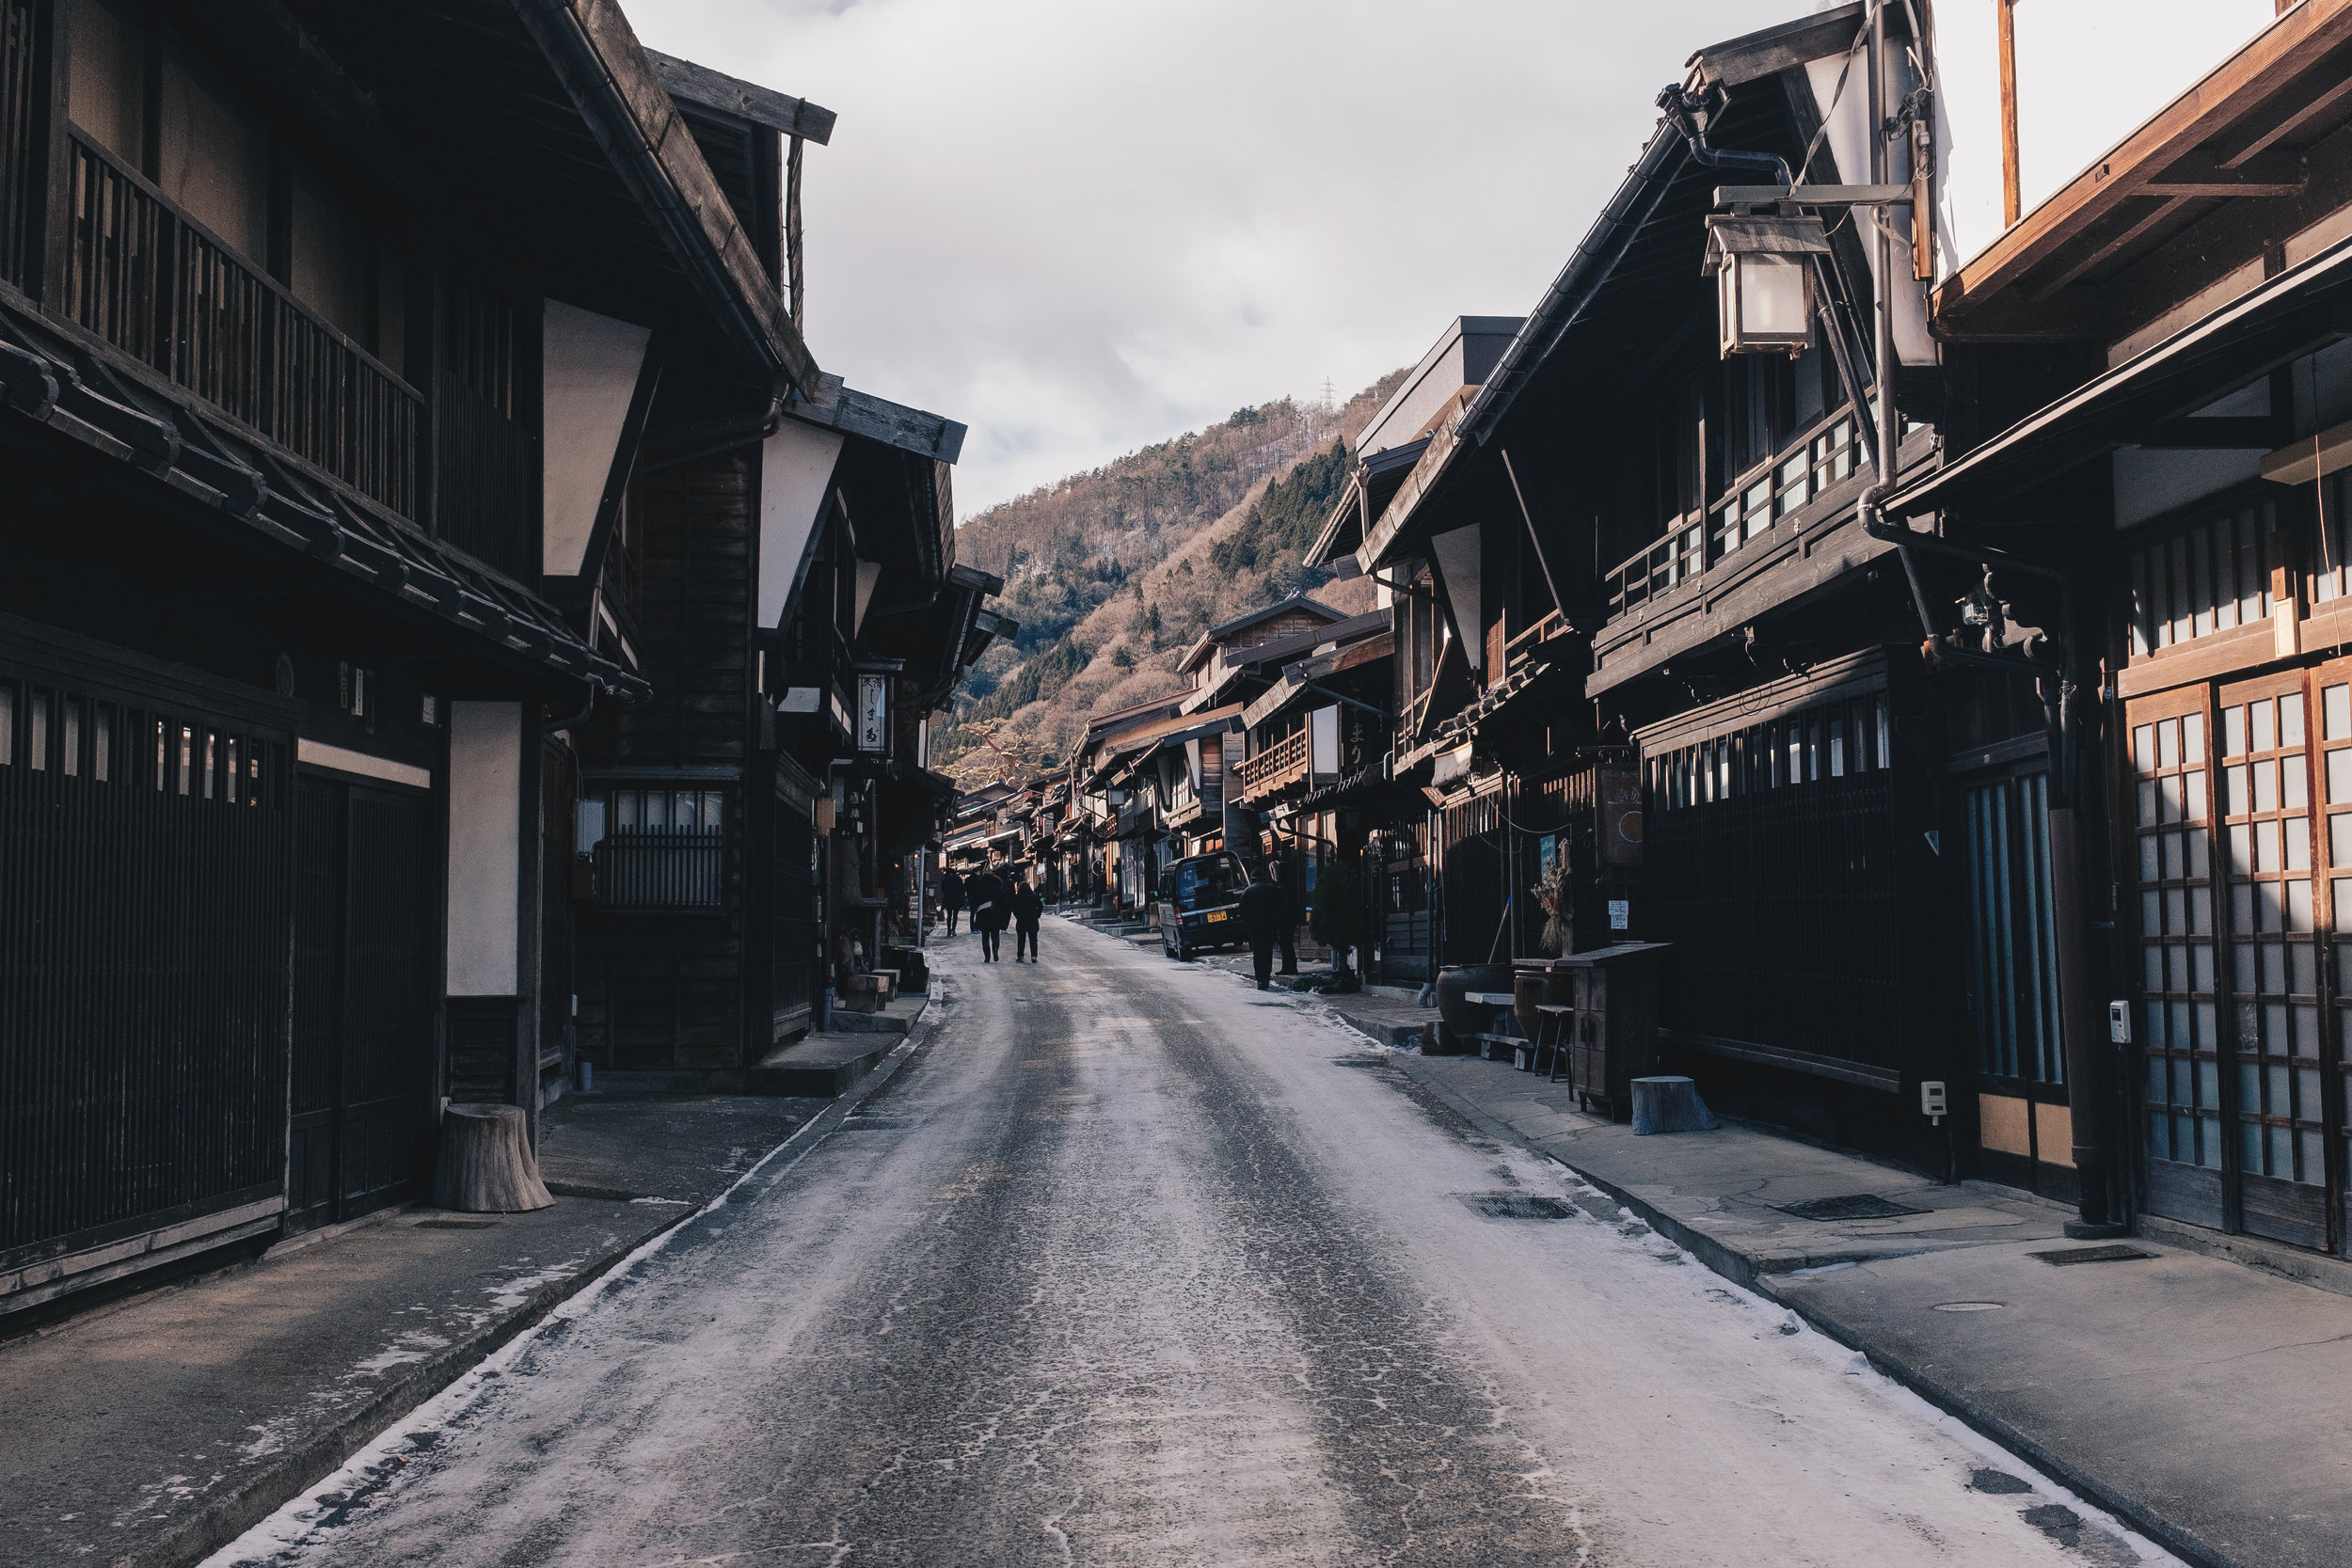 The main thoroughfare of Narai was once the busiest stretch of the all the post towns lining the Nakasendo trail